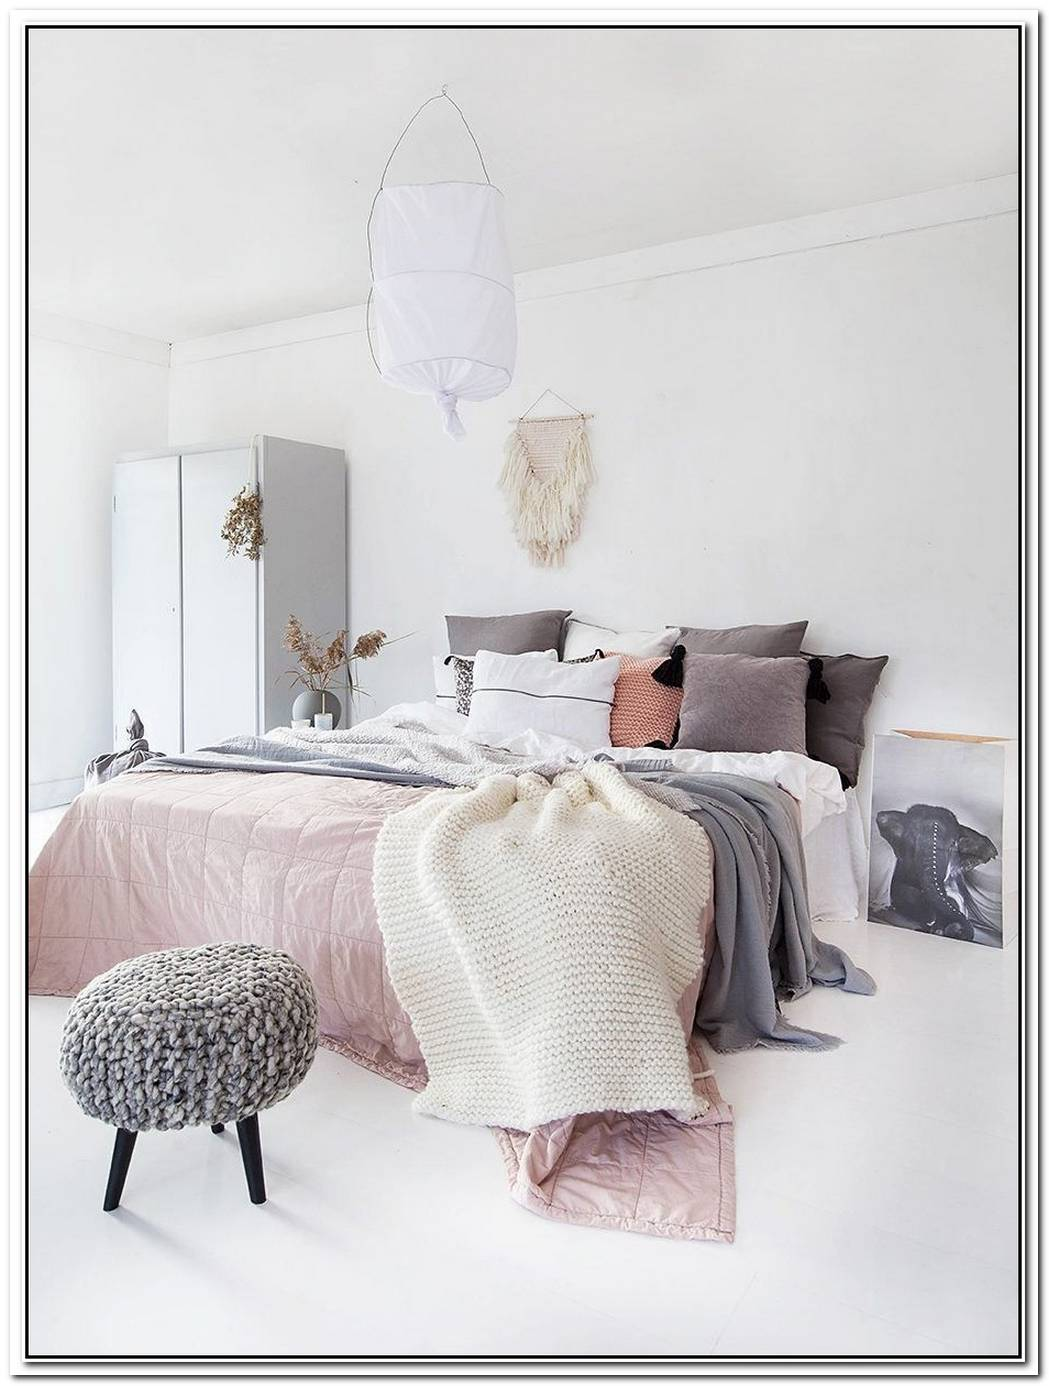 How To Use Textural Details To Elevate A Dreamy, Minimal Bedroom